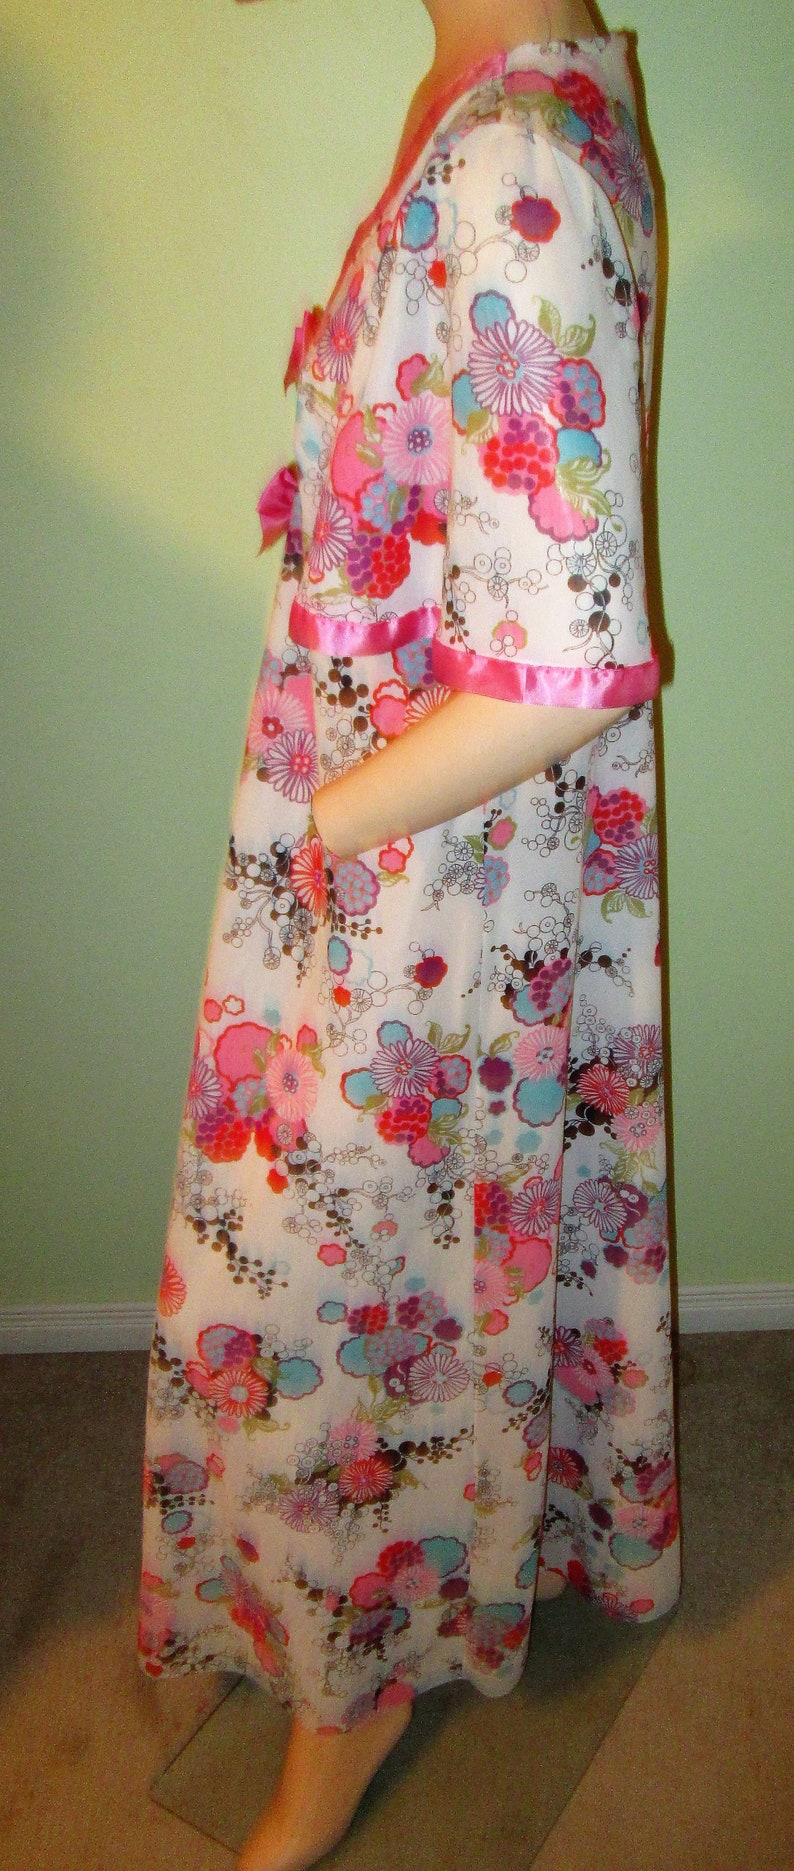 Vintage 1960s Saxon Lingerie Made in England Nylon Robe with Fluttery Sleeves Bows bust Floral Sale